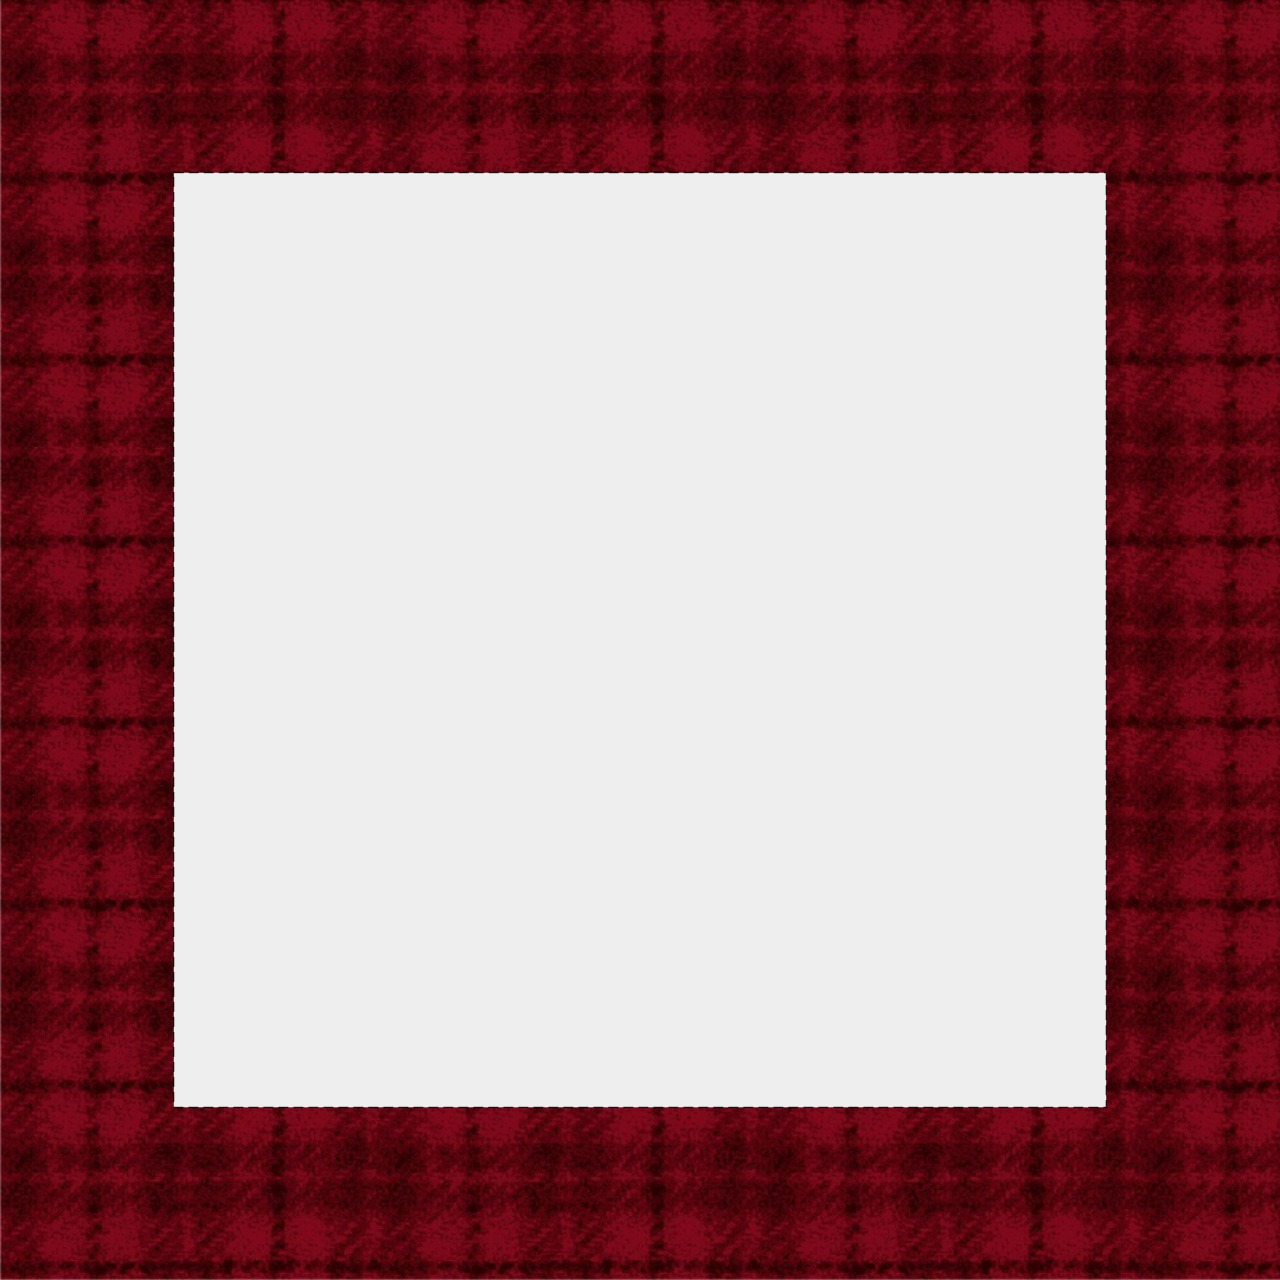 Instagram Border Template: Red Plaid